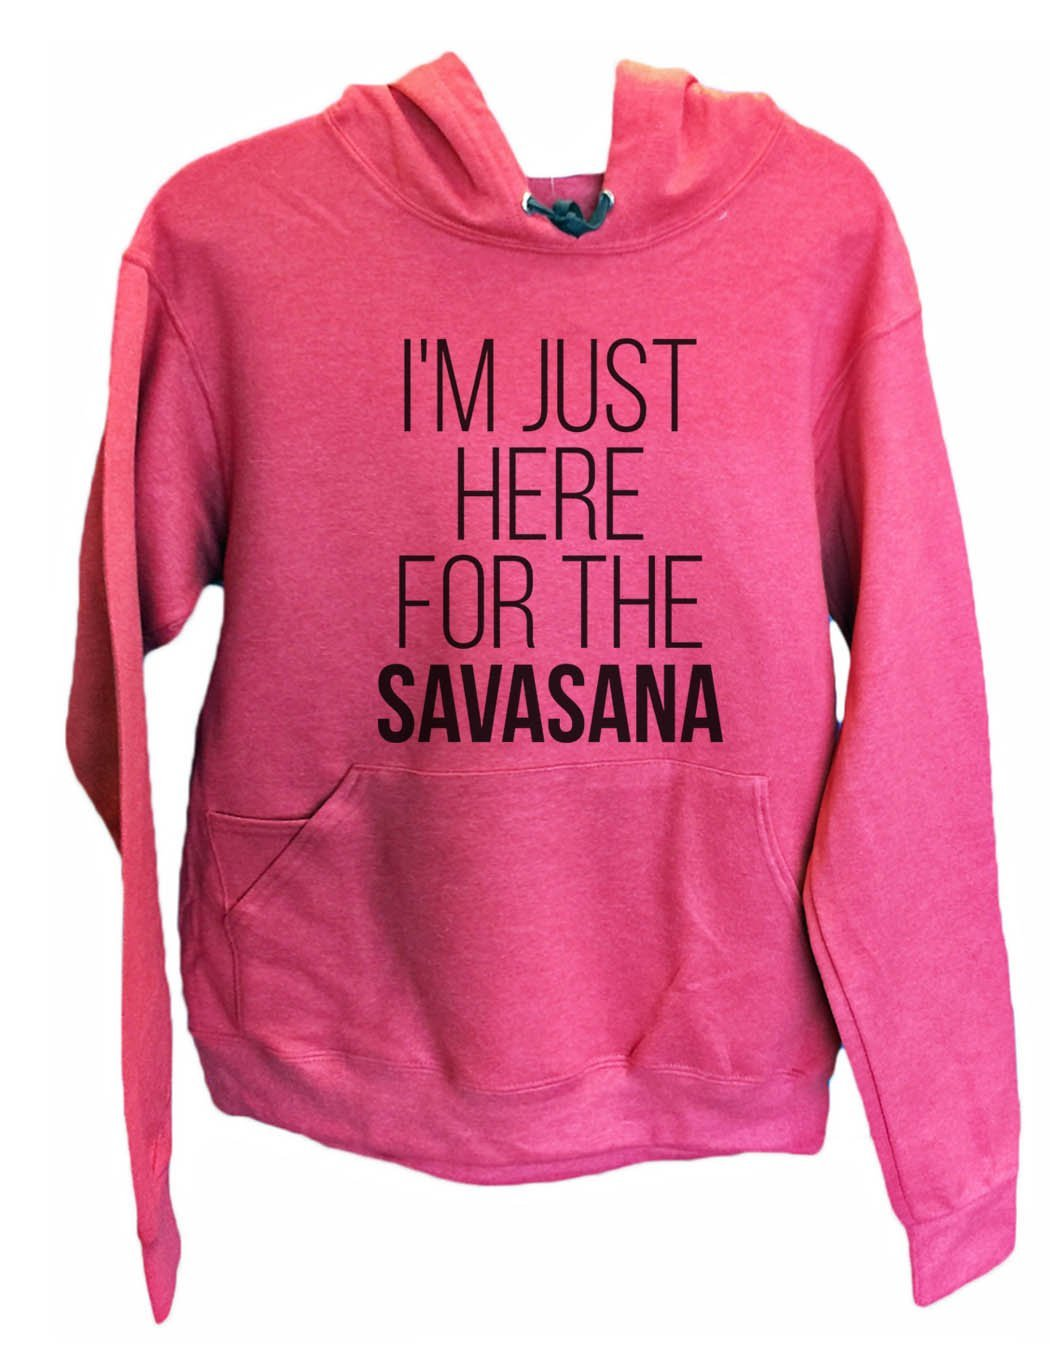 UNISEX HOODIE - I'm just here for the Savasana - FUNNY MENS AND WOMENS HOODED SWEATSHIRTS - 2119 Funny Shirt Small / Cranberry Red